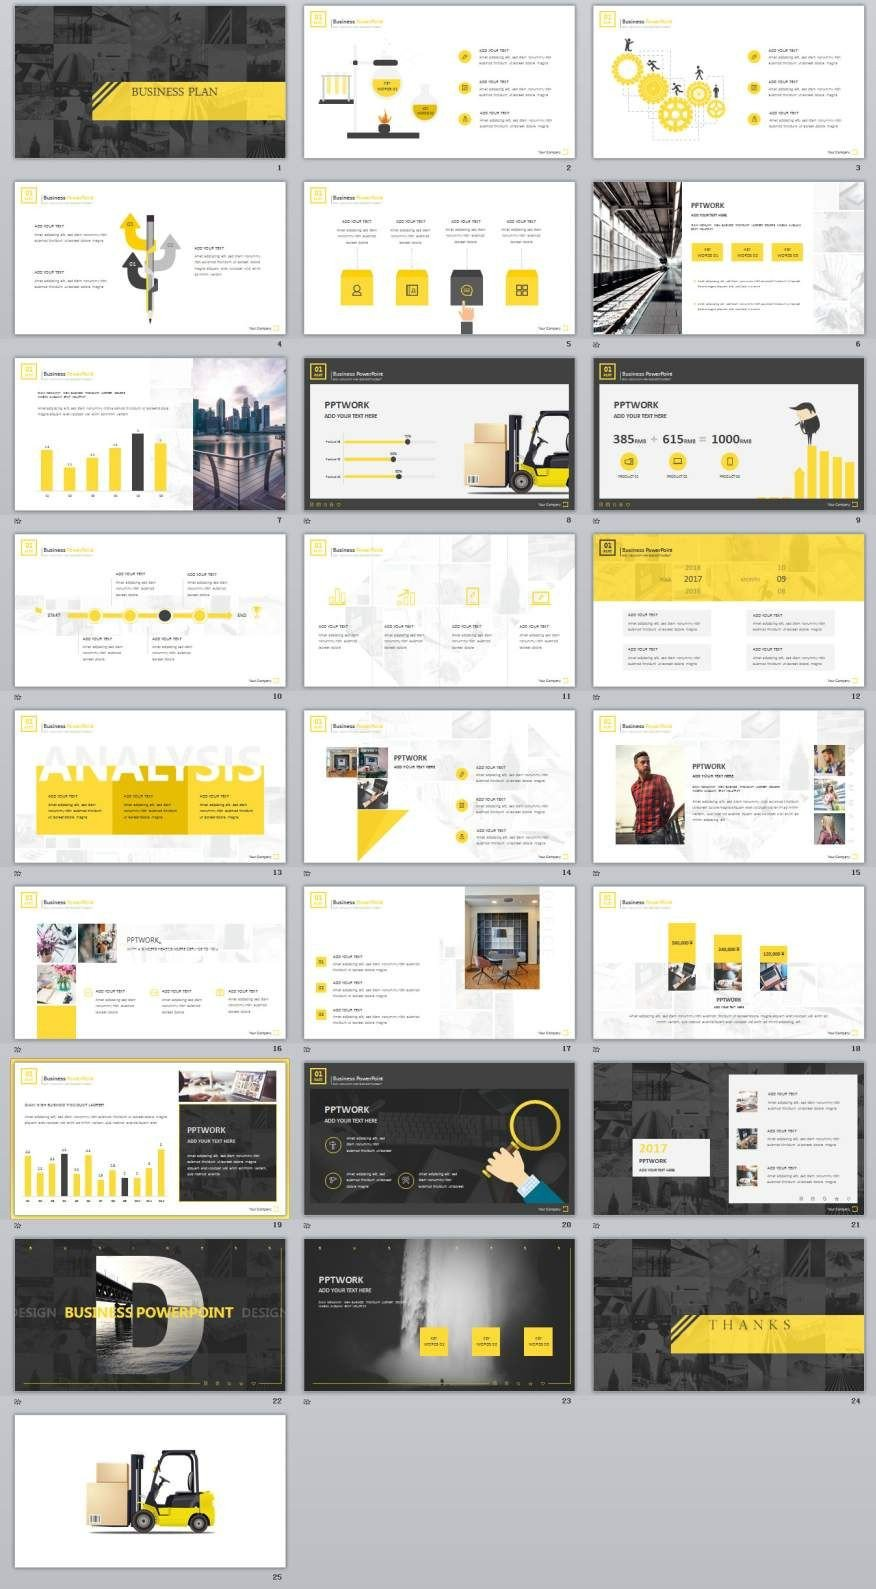 Powerpoint Presentation Outline Example 25 Yellow Business Plan Powerpoint Templates